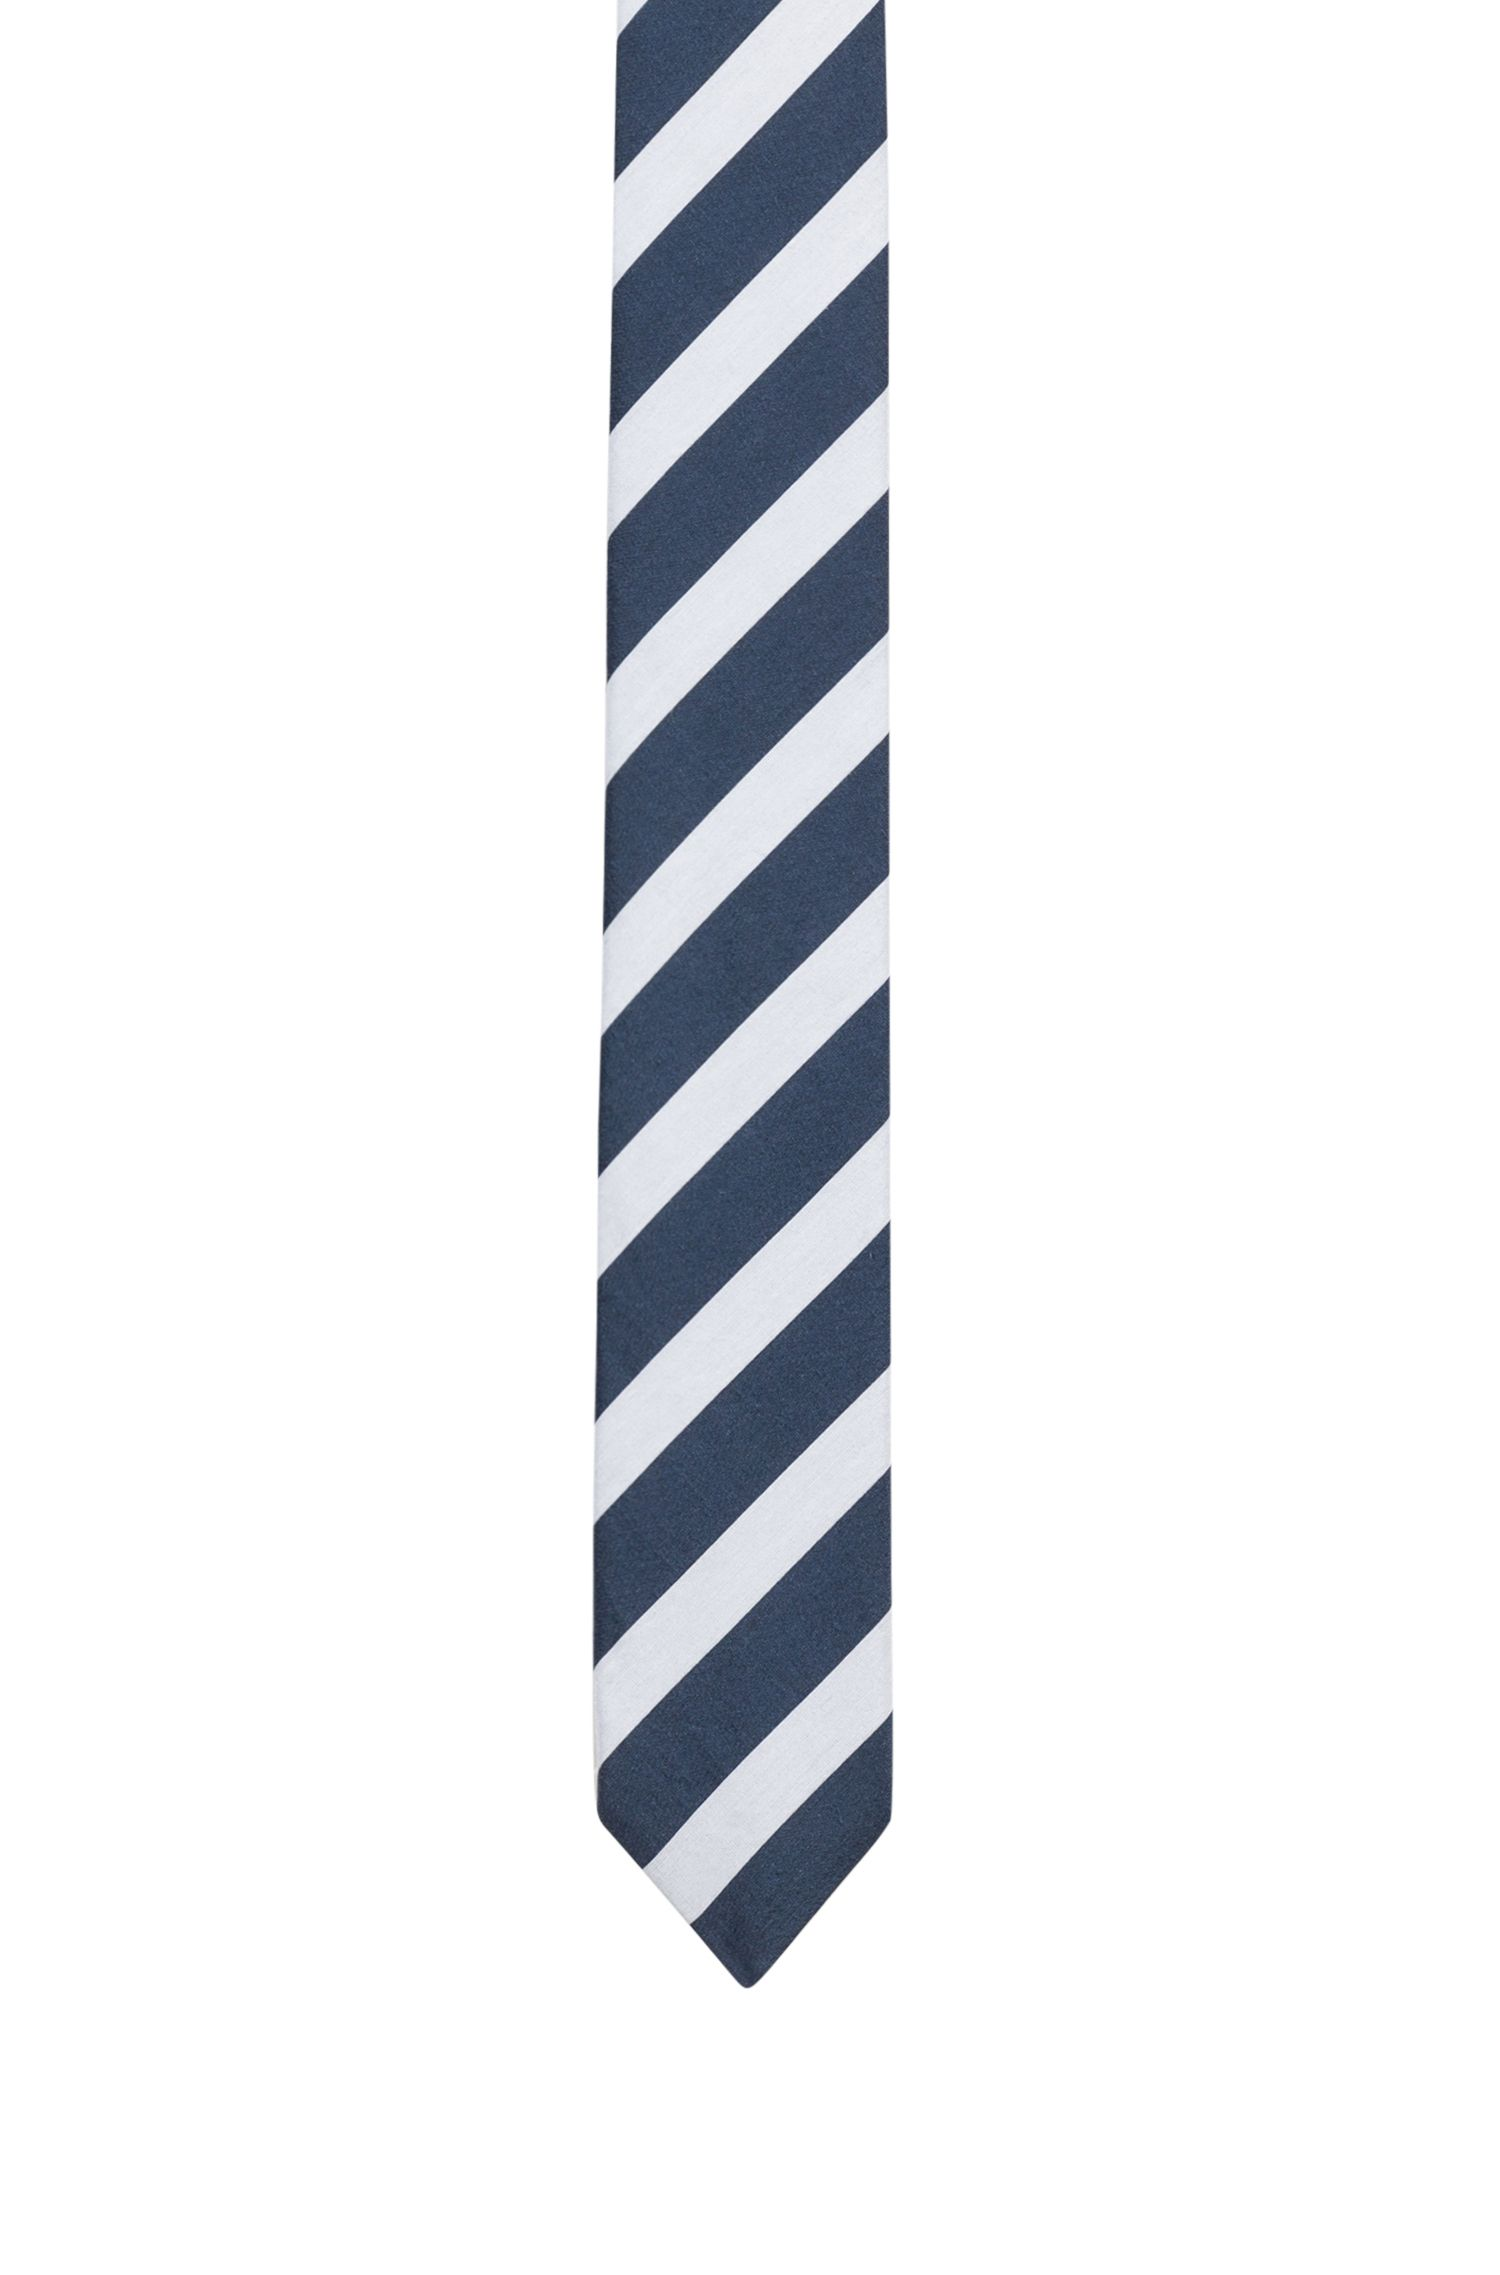 Diagonal-striped tie in a cotton blend with silk, Patterned